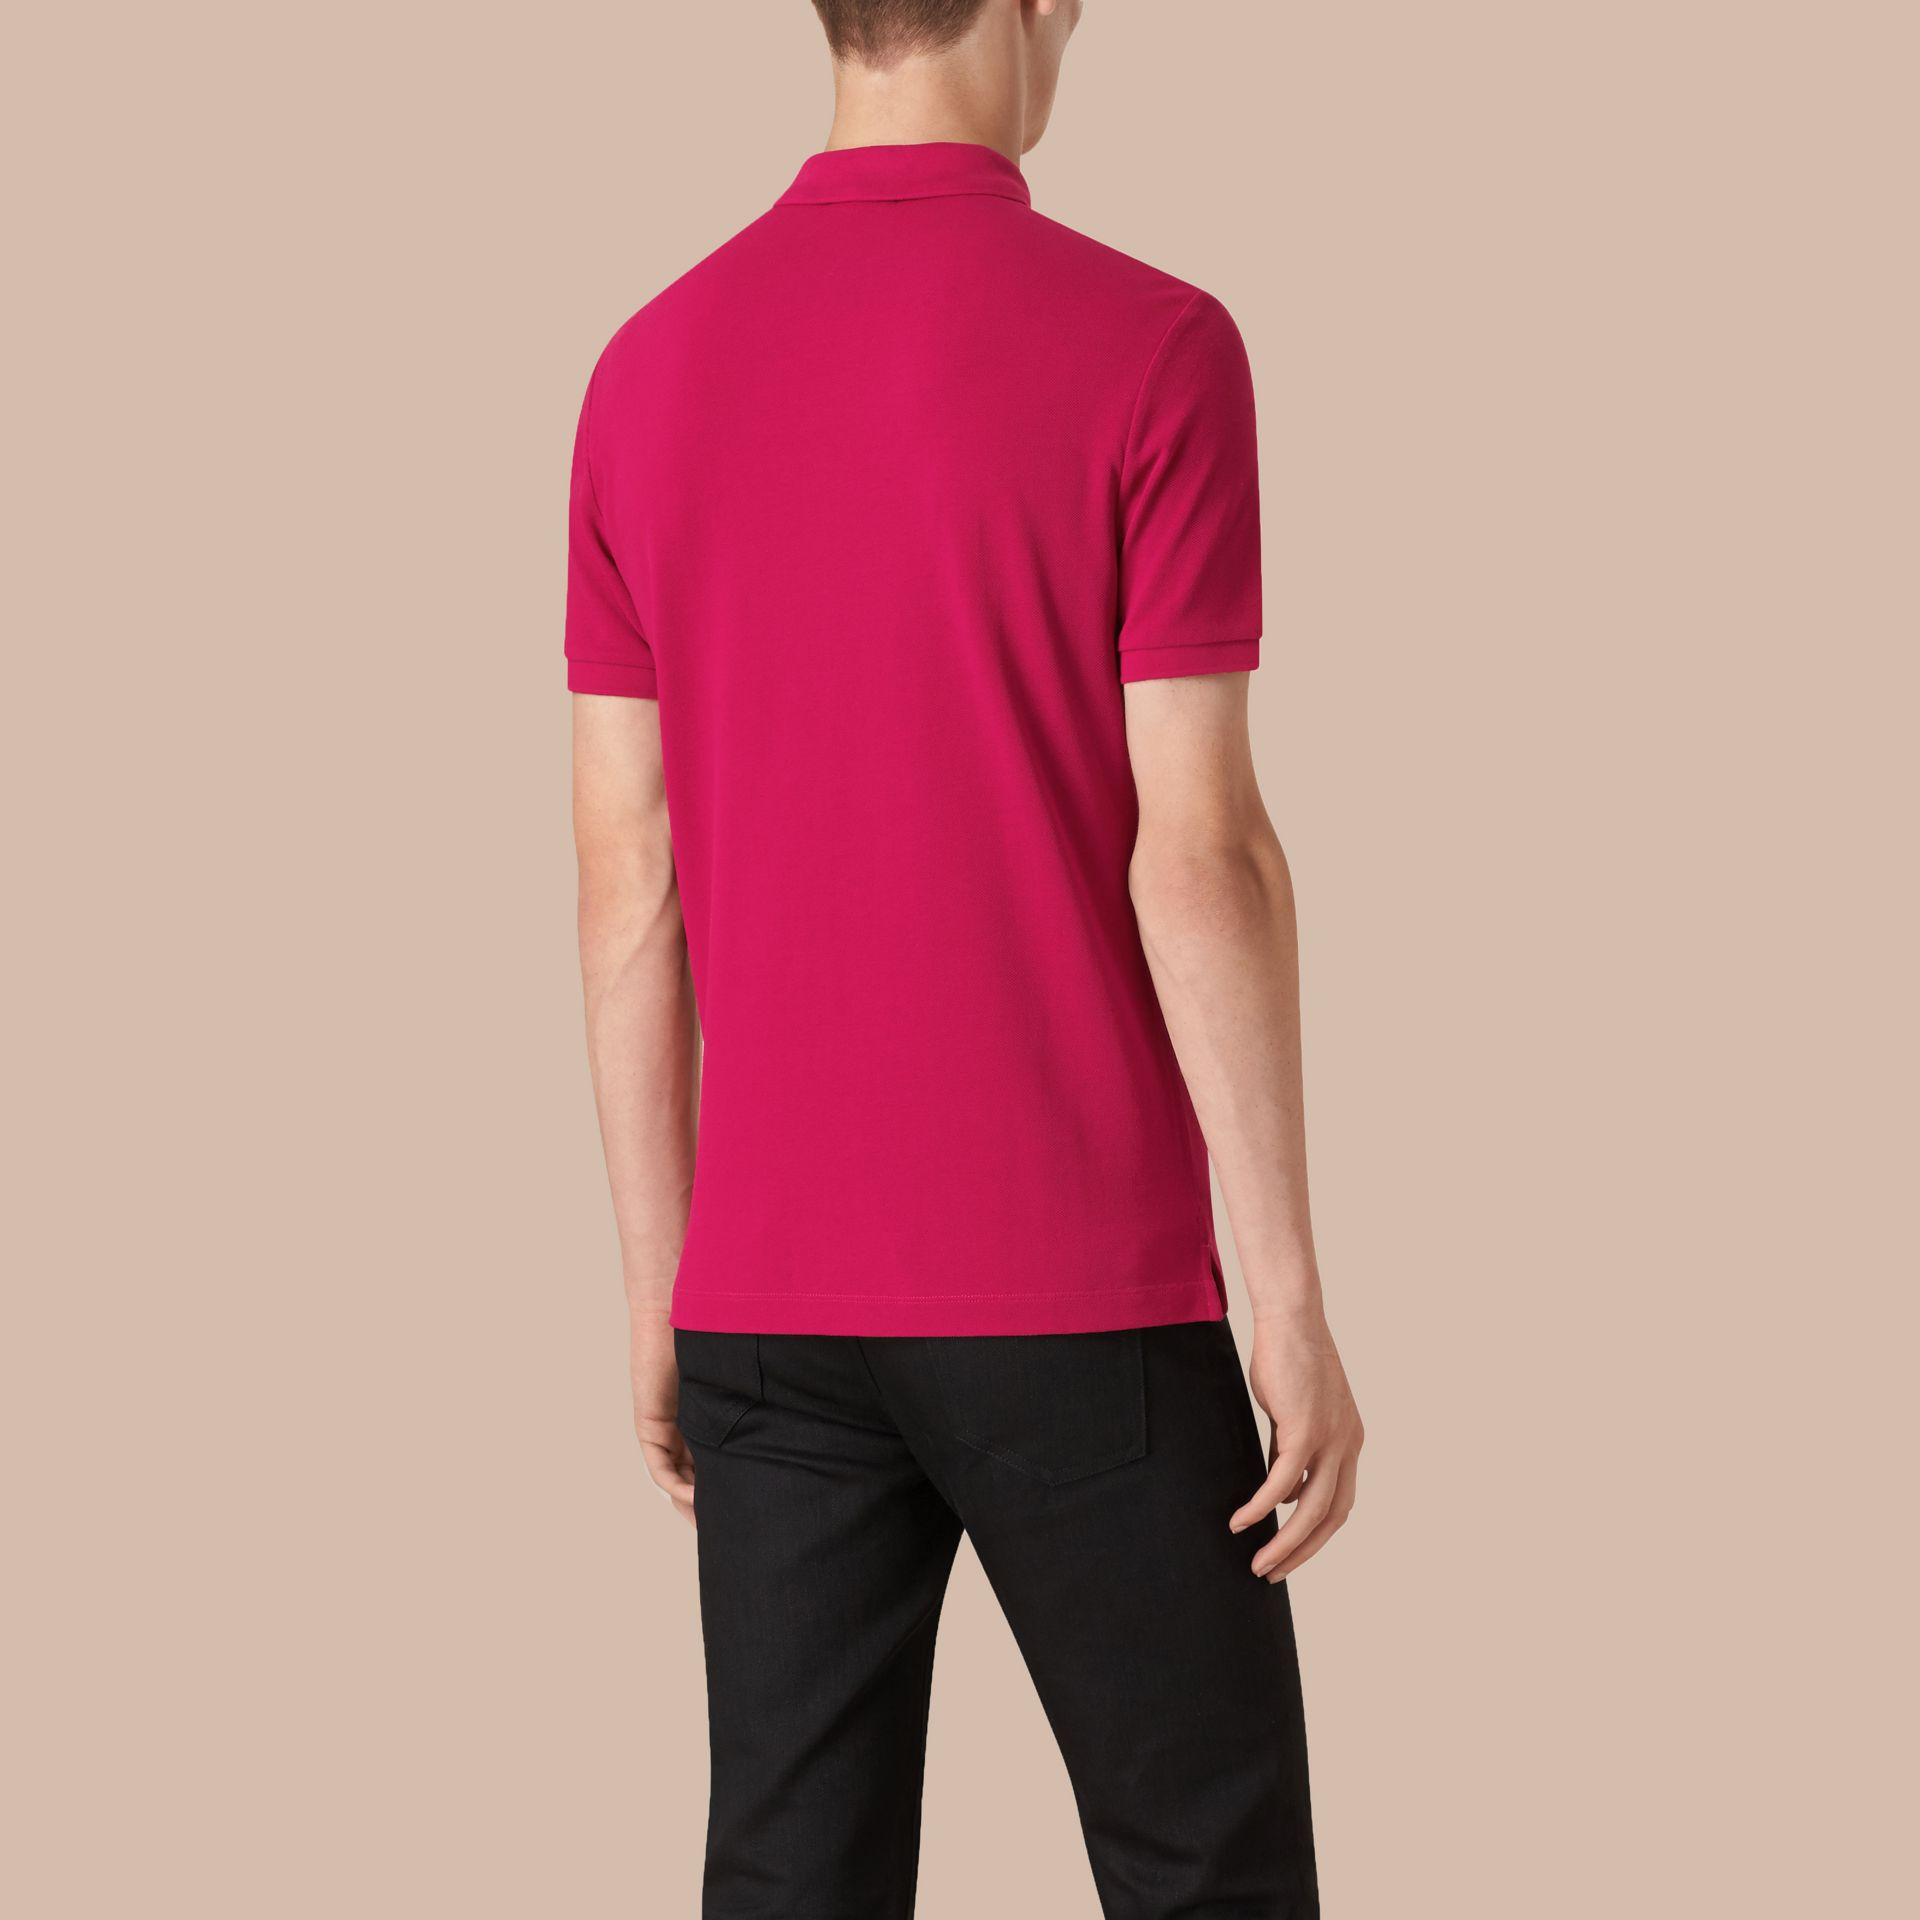 Vibrant fuchsia Check Placket Cotton Piqué Polo Shirt Vibrant Fuchsia - gallery image 3